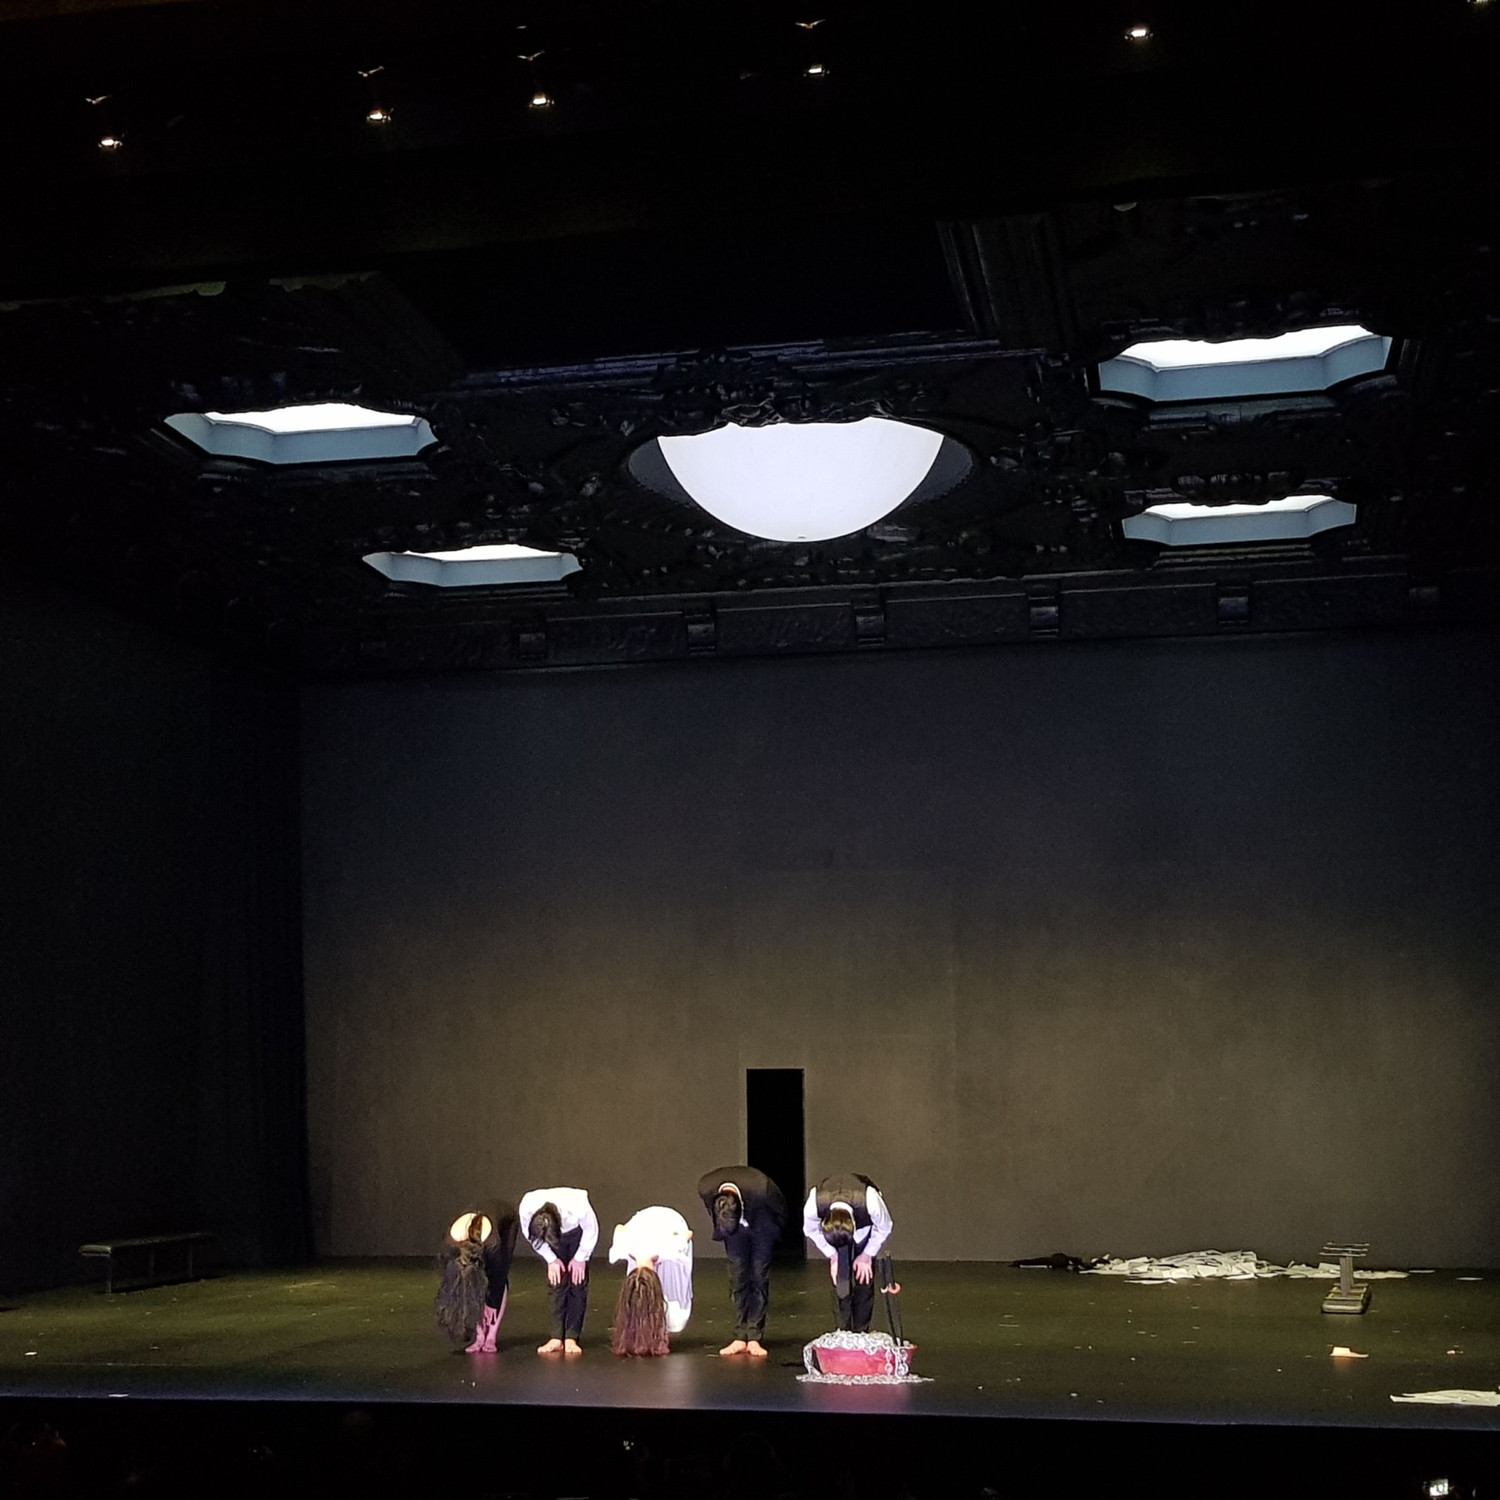 BWW Review: A DOLL'S HOUSE at Seoul Arts Center CJ Towol Theater